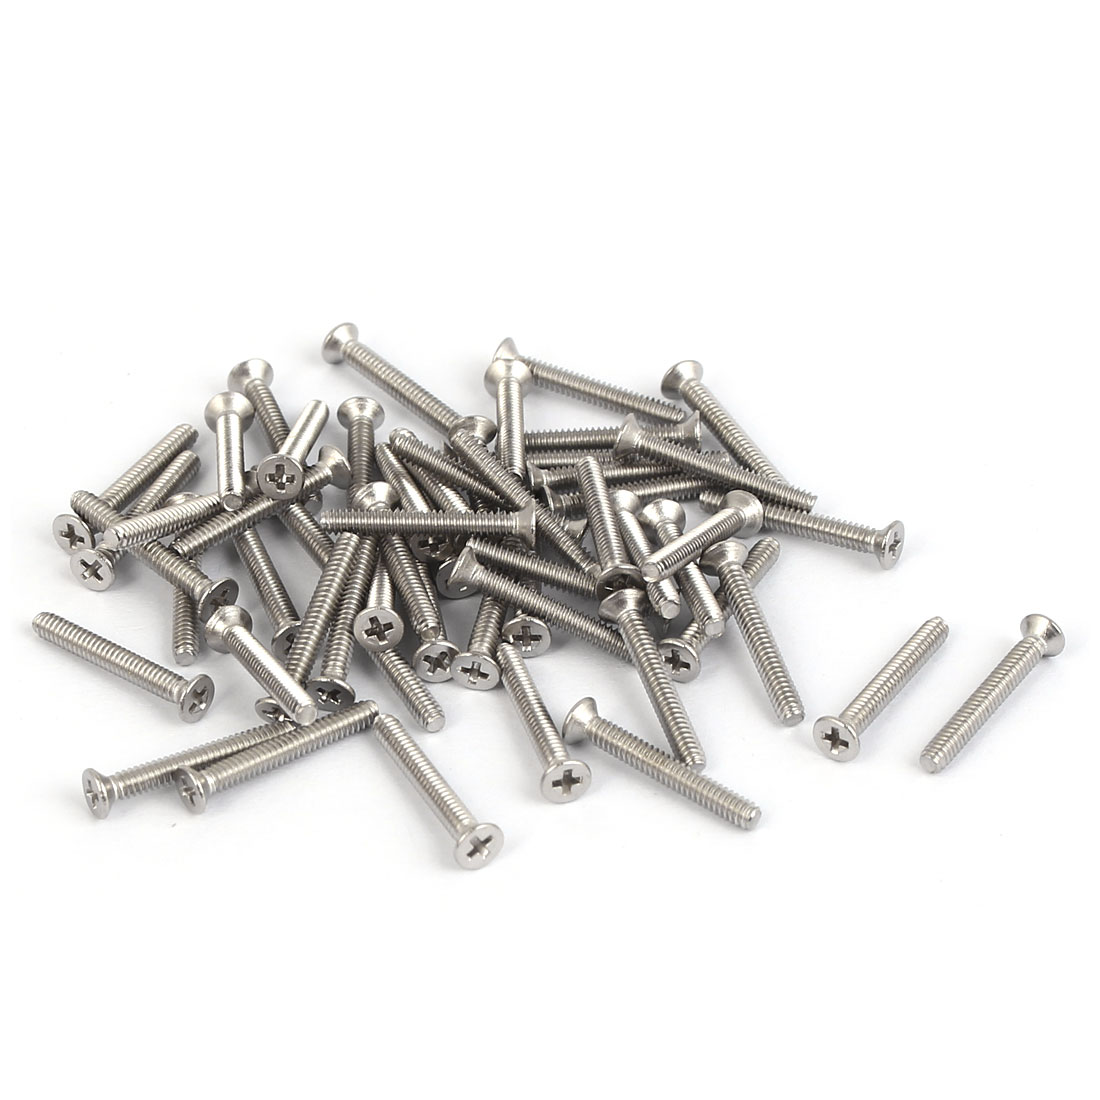 50 Pcs M1.6x12mm 316 Stainless Steel Countersunk Phillips Machine Screws Bolts